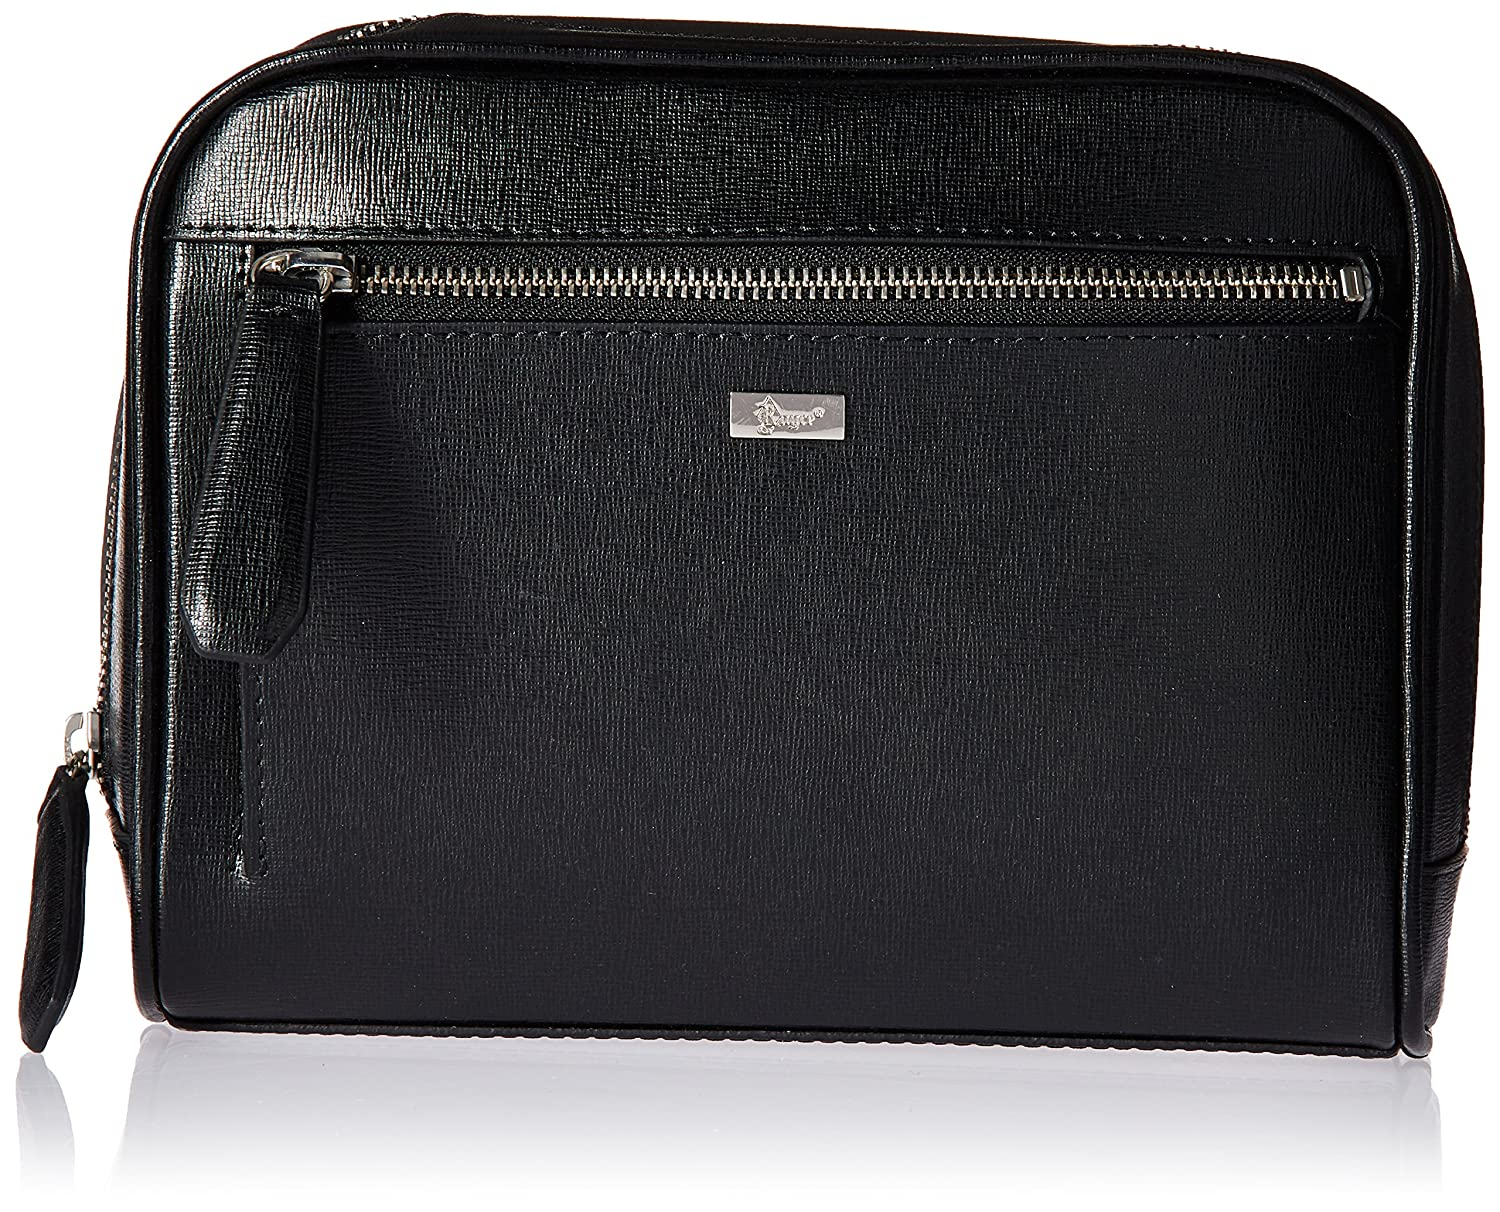 Amazon.com  Royce Leather Toiletry Travel Grooming Wash Bag in Saffiano  Leather, Black  Online Quality Brands LLC 48737c509b